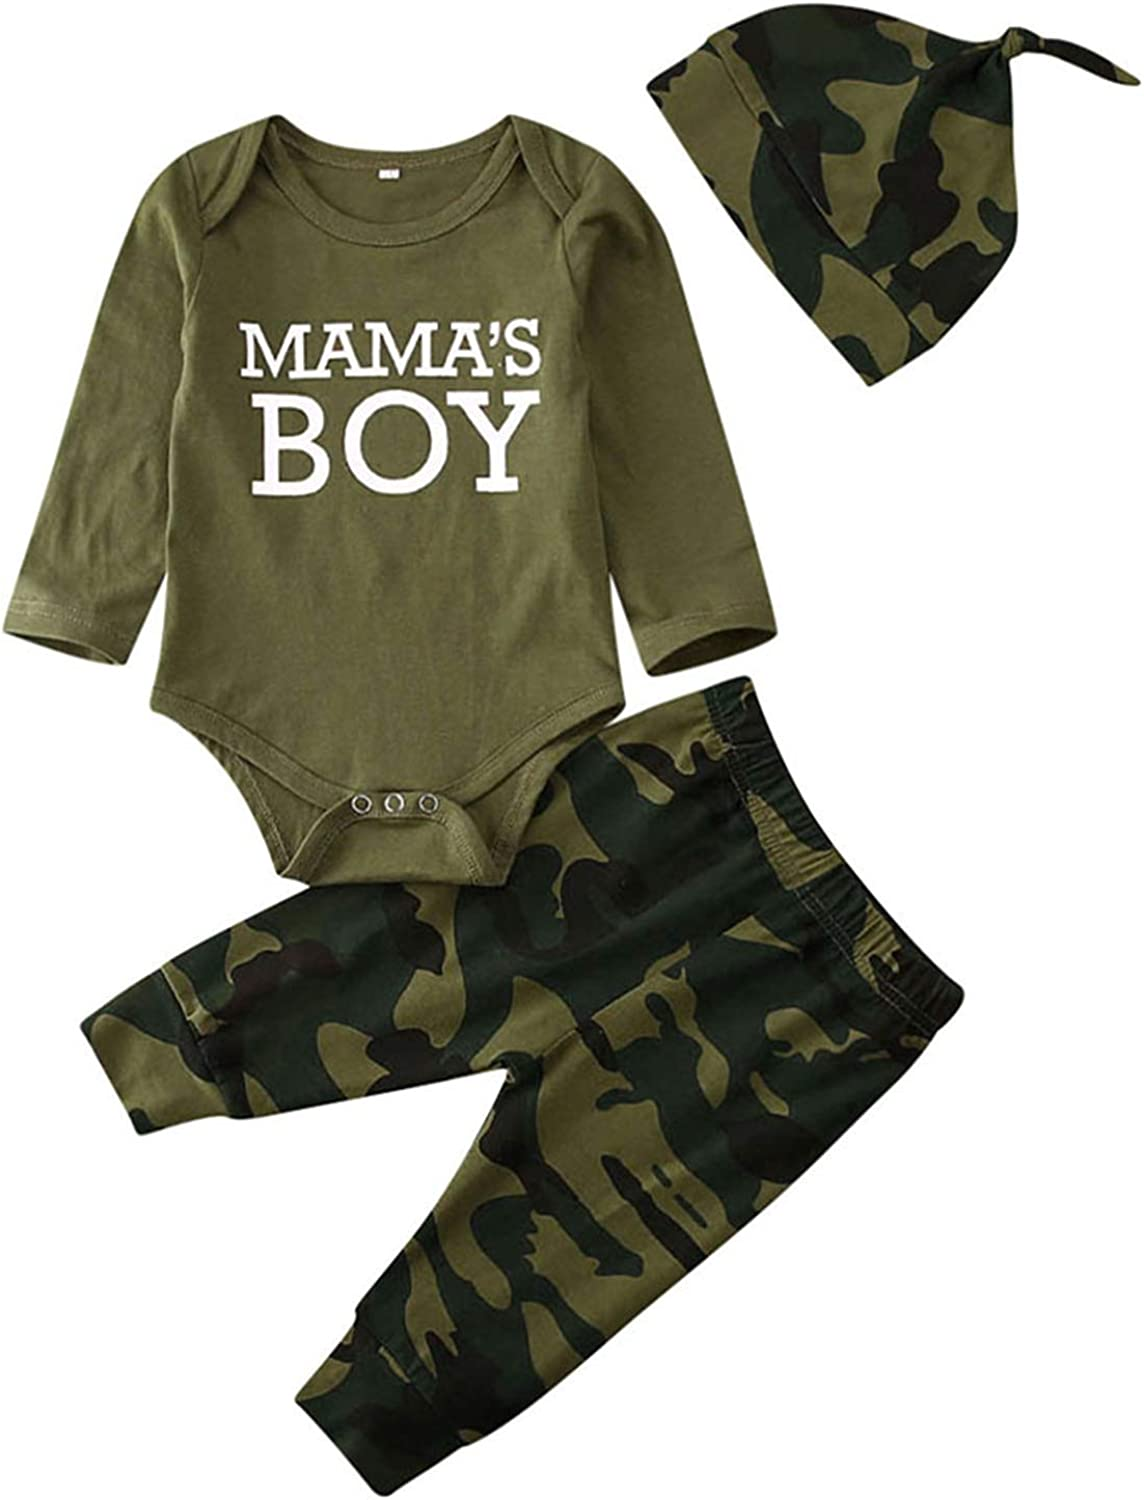 Newborn Baby Girl Clothes Mommy Sayings Top Printed Bodysuits Camouflage Pants+Hats Romper Outfit Set